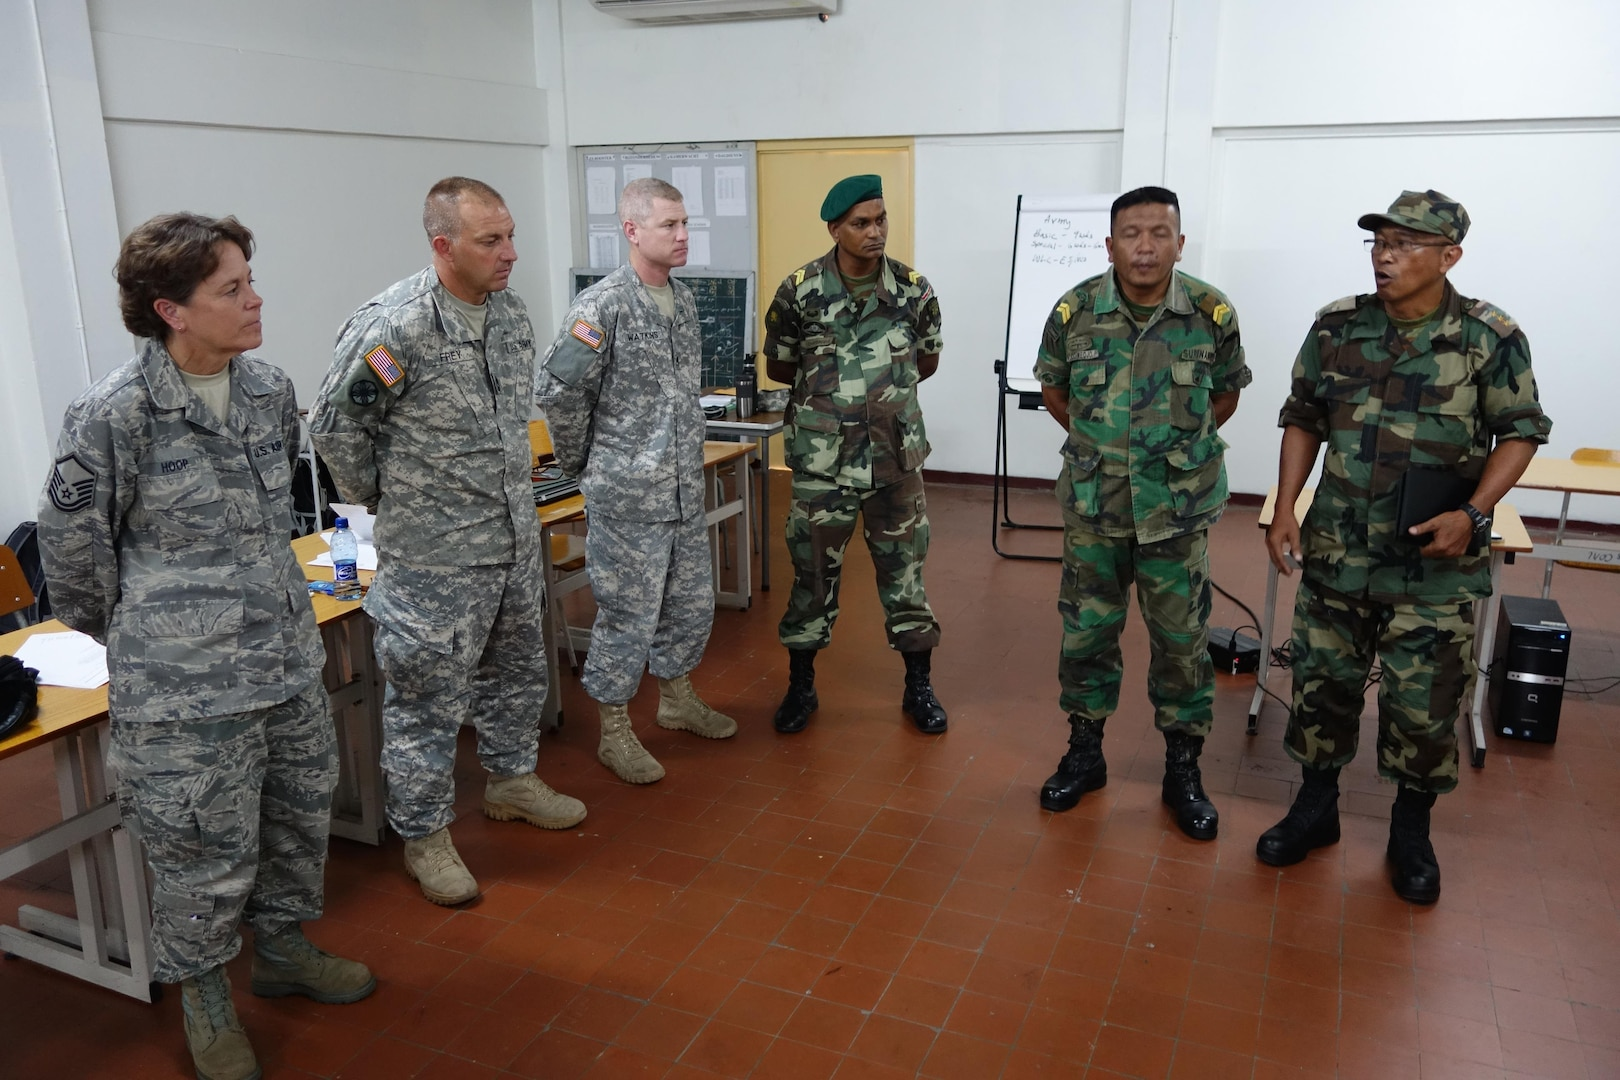 U.S Air Force Master Sgt. Lori Hoop, Army Master Sgt. Marcus Frey and Army Staff Sgt. Richard Watkins, all members of the South Dakota National Guard, participate in a subject matter expert exchange on non-commissioned officer professional development in Paramaribo, Suriname, Sept. 16, 2015.